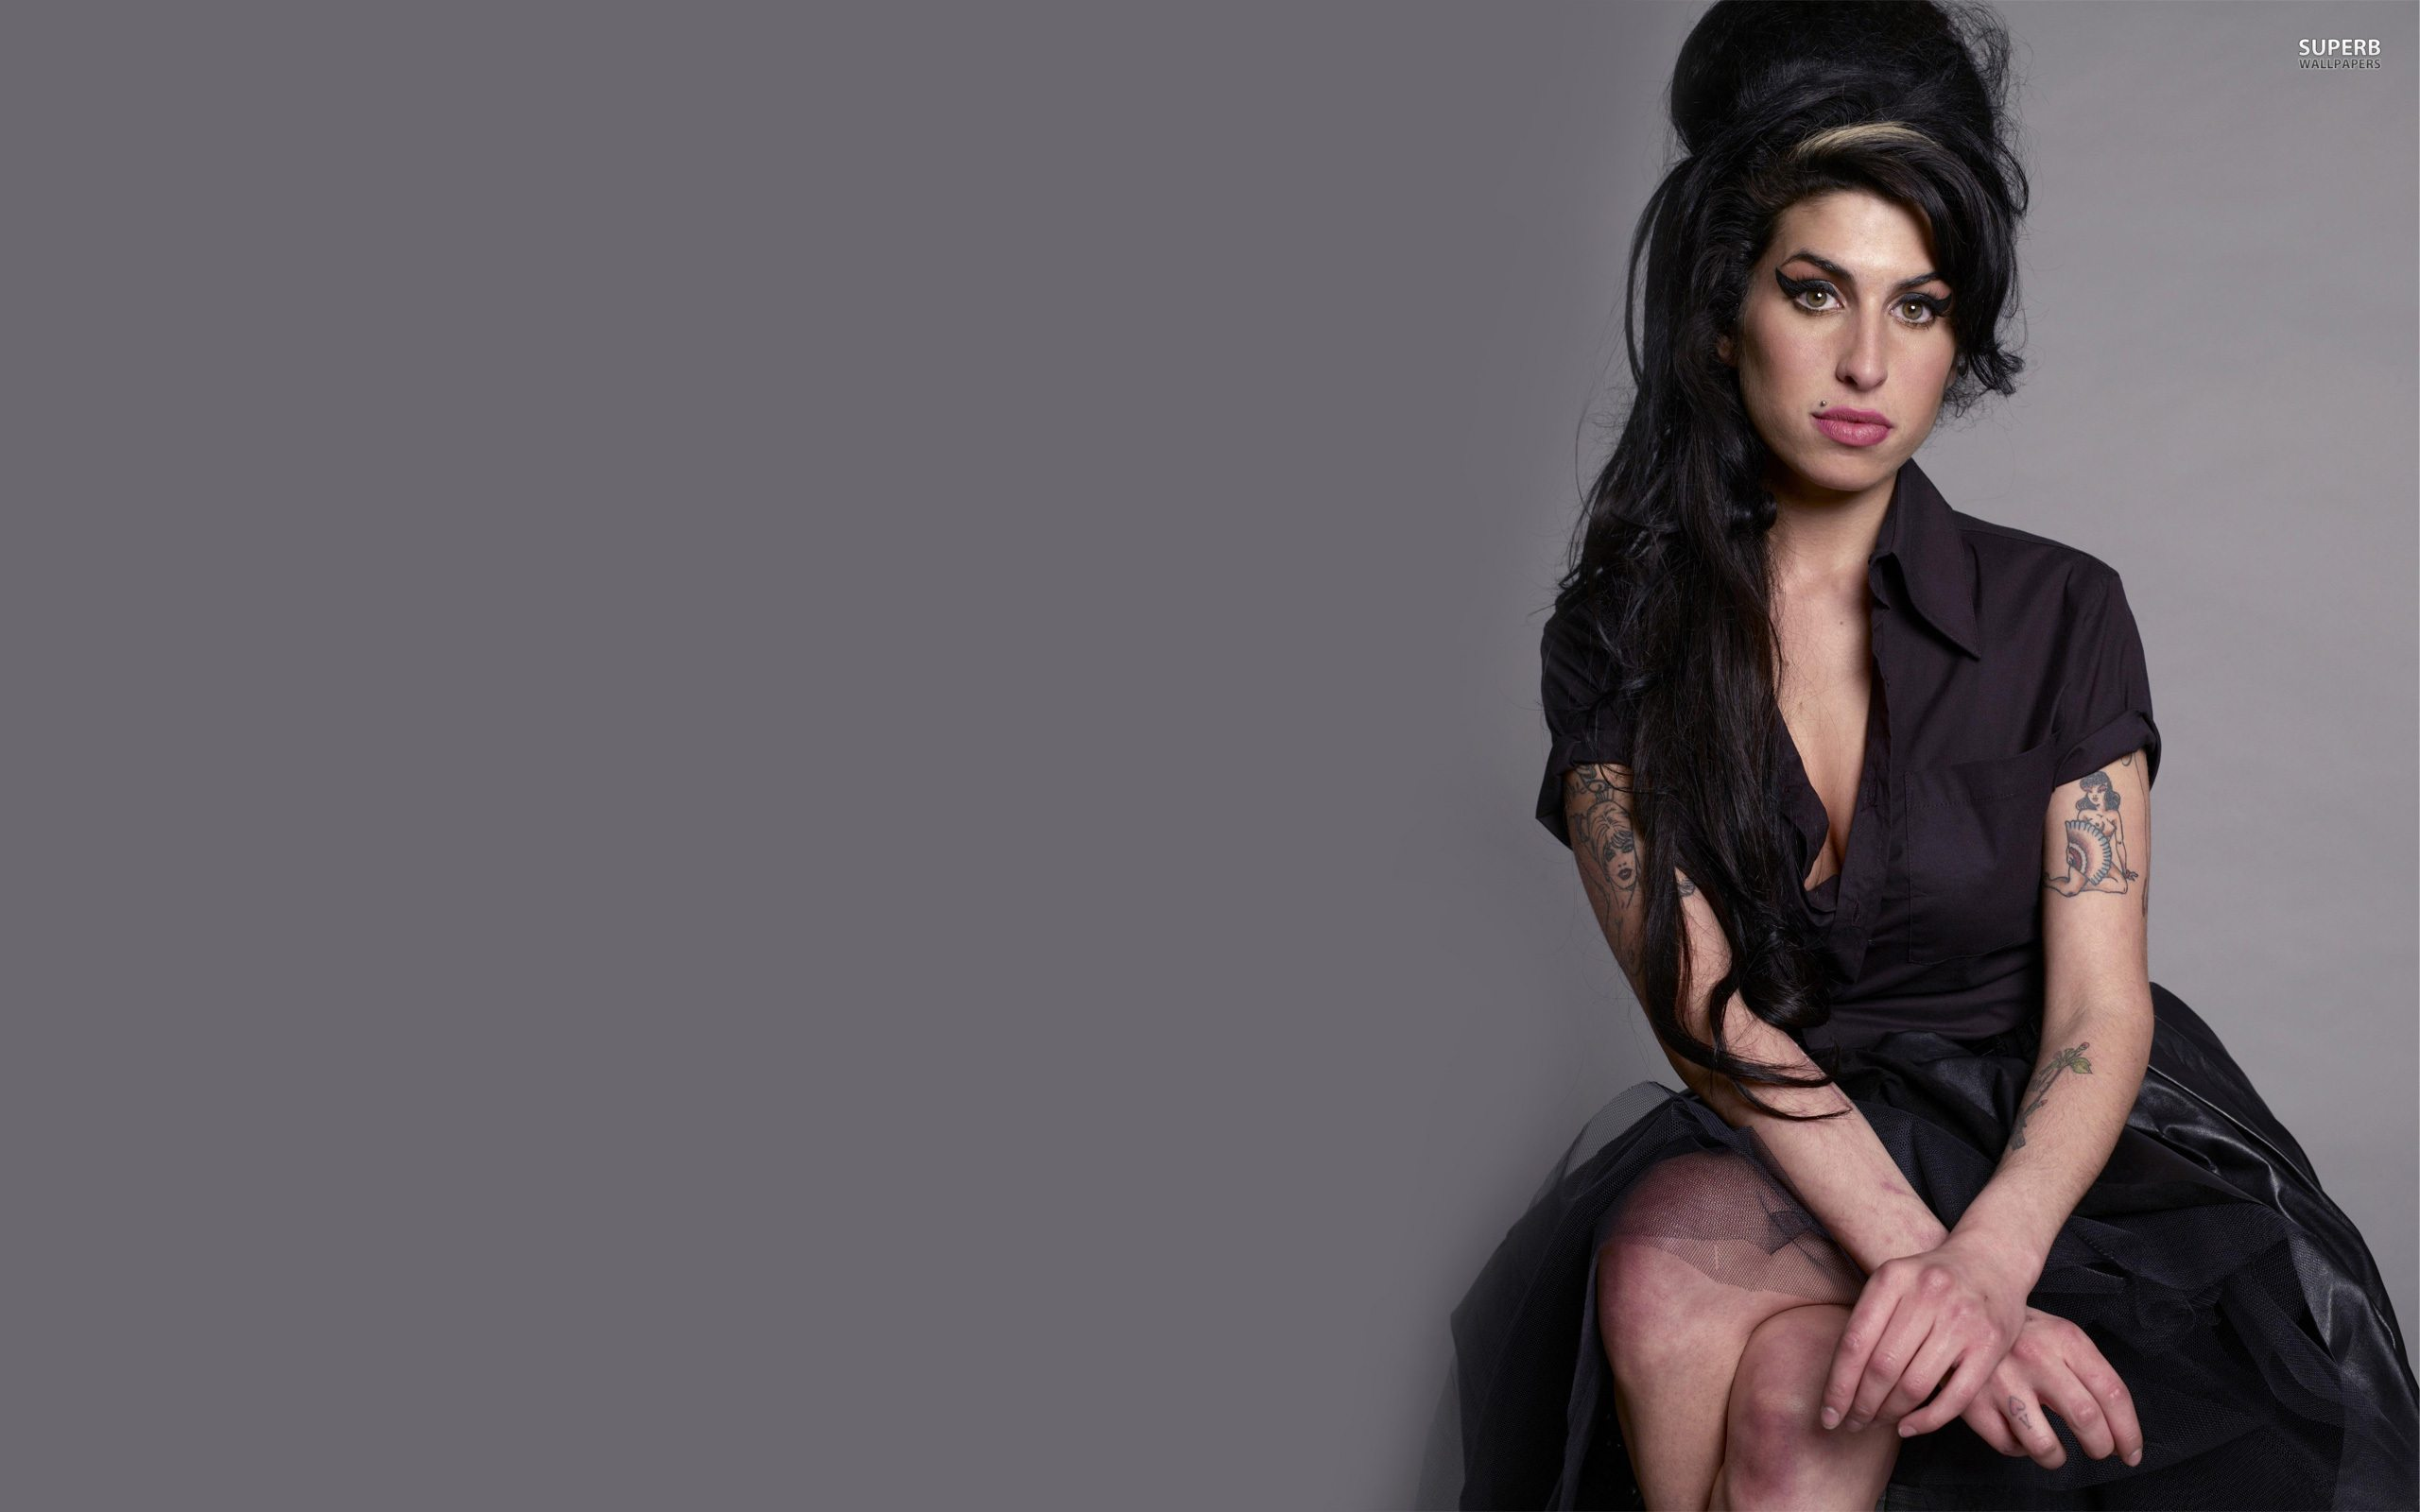 amy-winehouse-5629-2560x1600